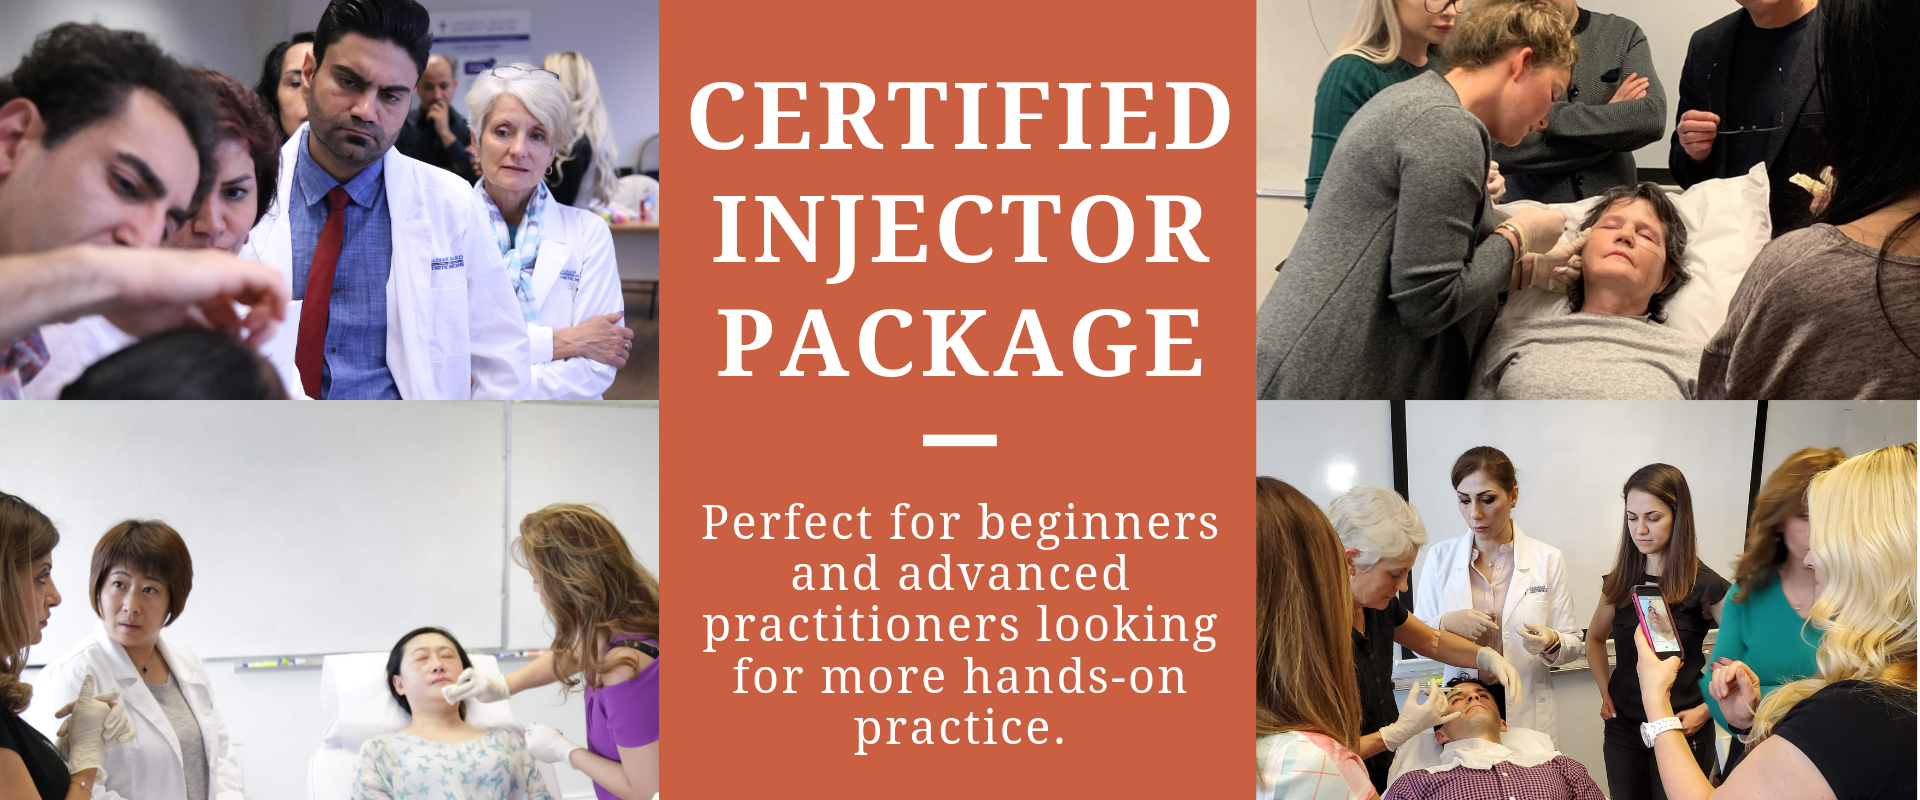 Certified Injector Package